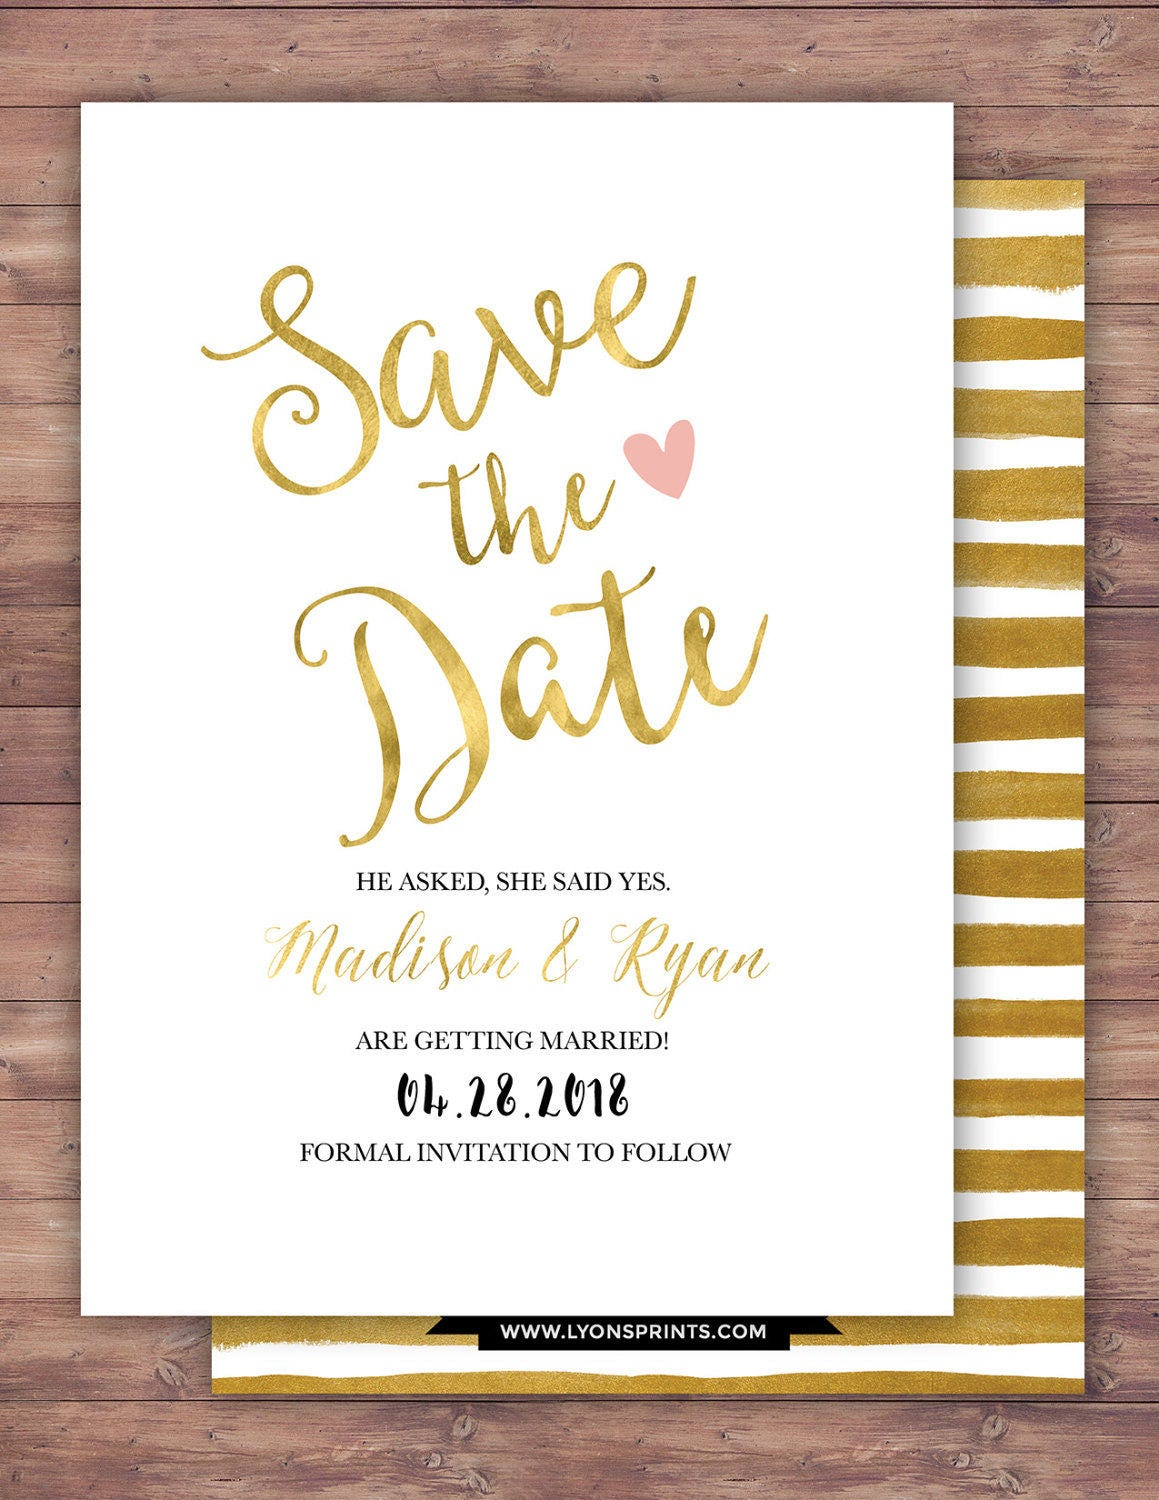 Save The Date BOHO Wedding Shower Invitation Couples Arrows Tribal Bridal Happily Ever After